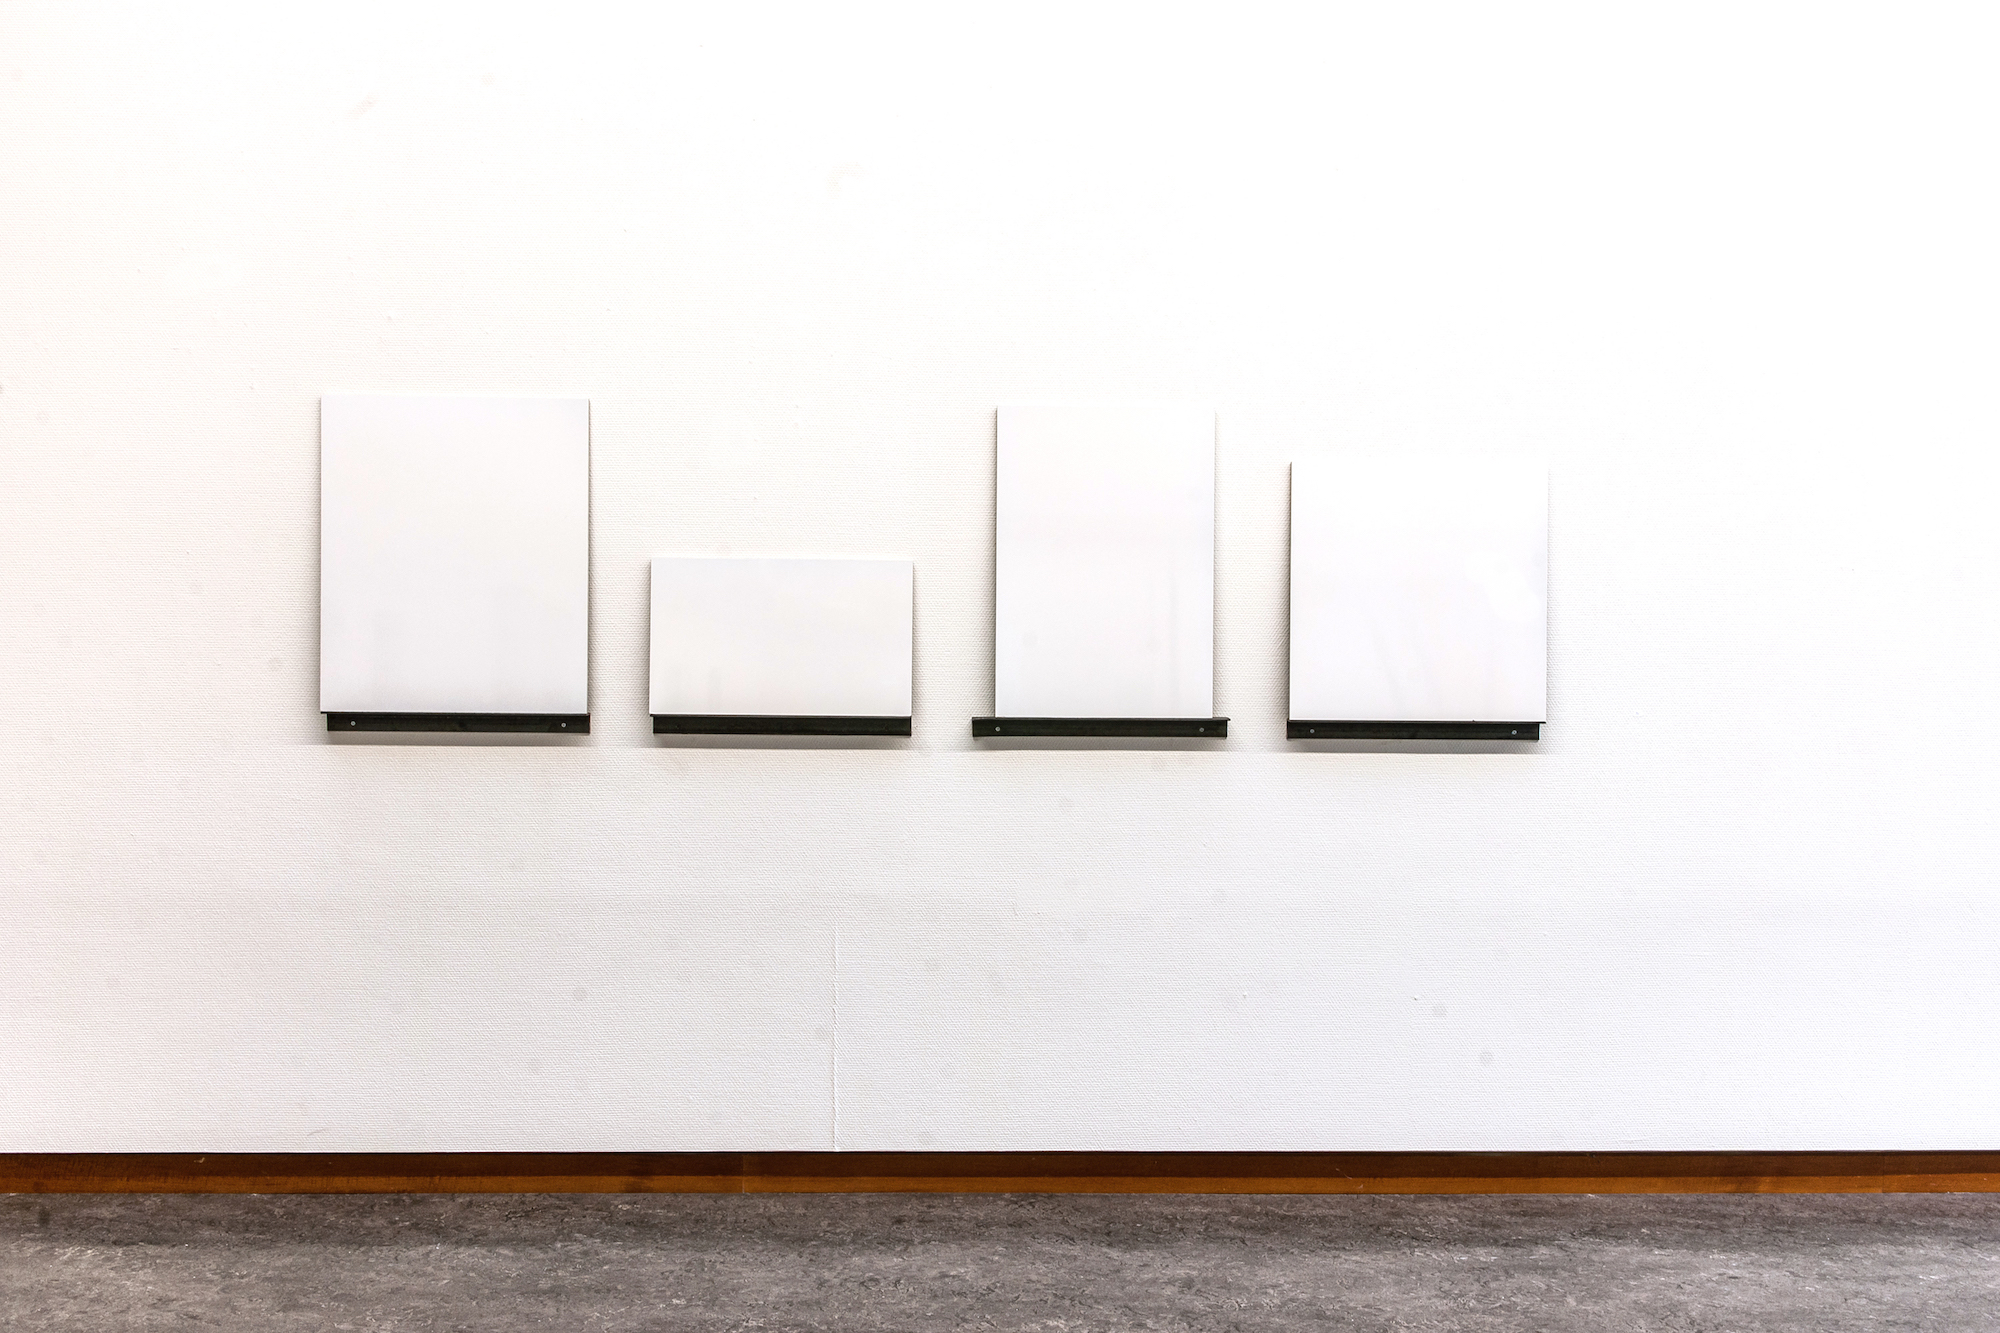 White Superficial , 2012 Lacquer on MDF, 60 x 220 cm  Neo Ego , Haugesund Billedgalleri, 2015 Photo: Gunhild Saltvik